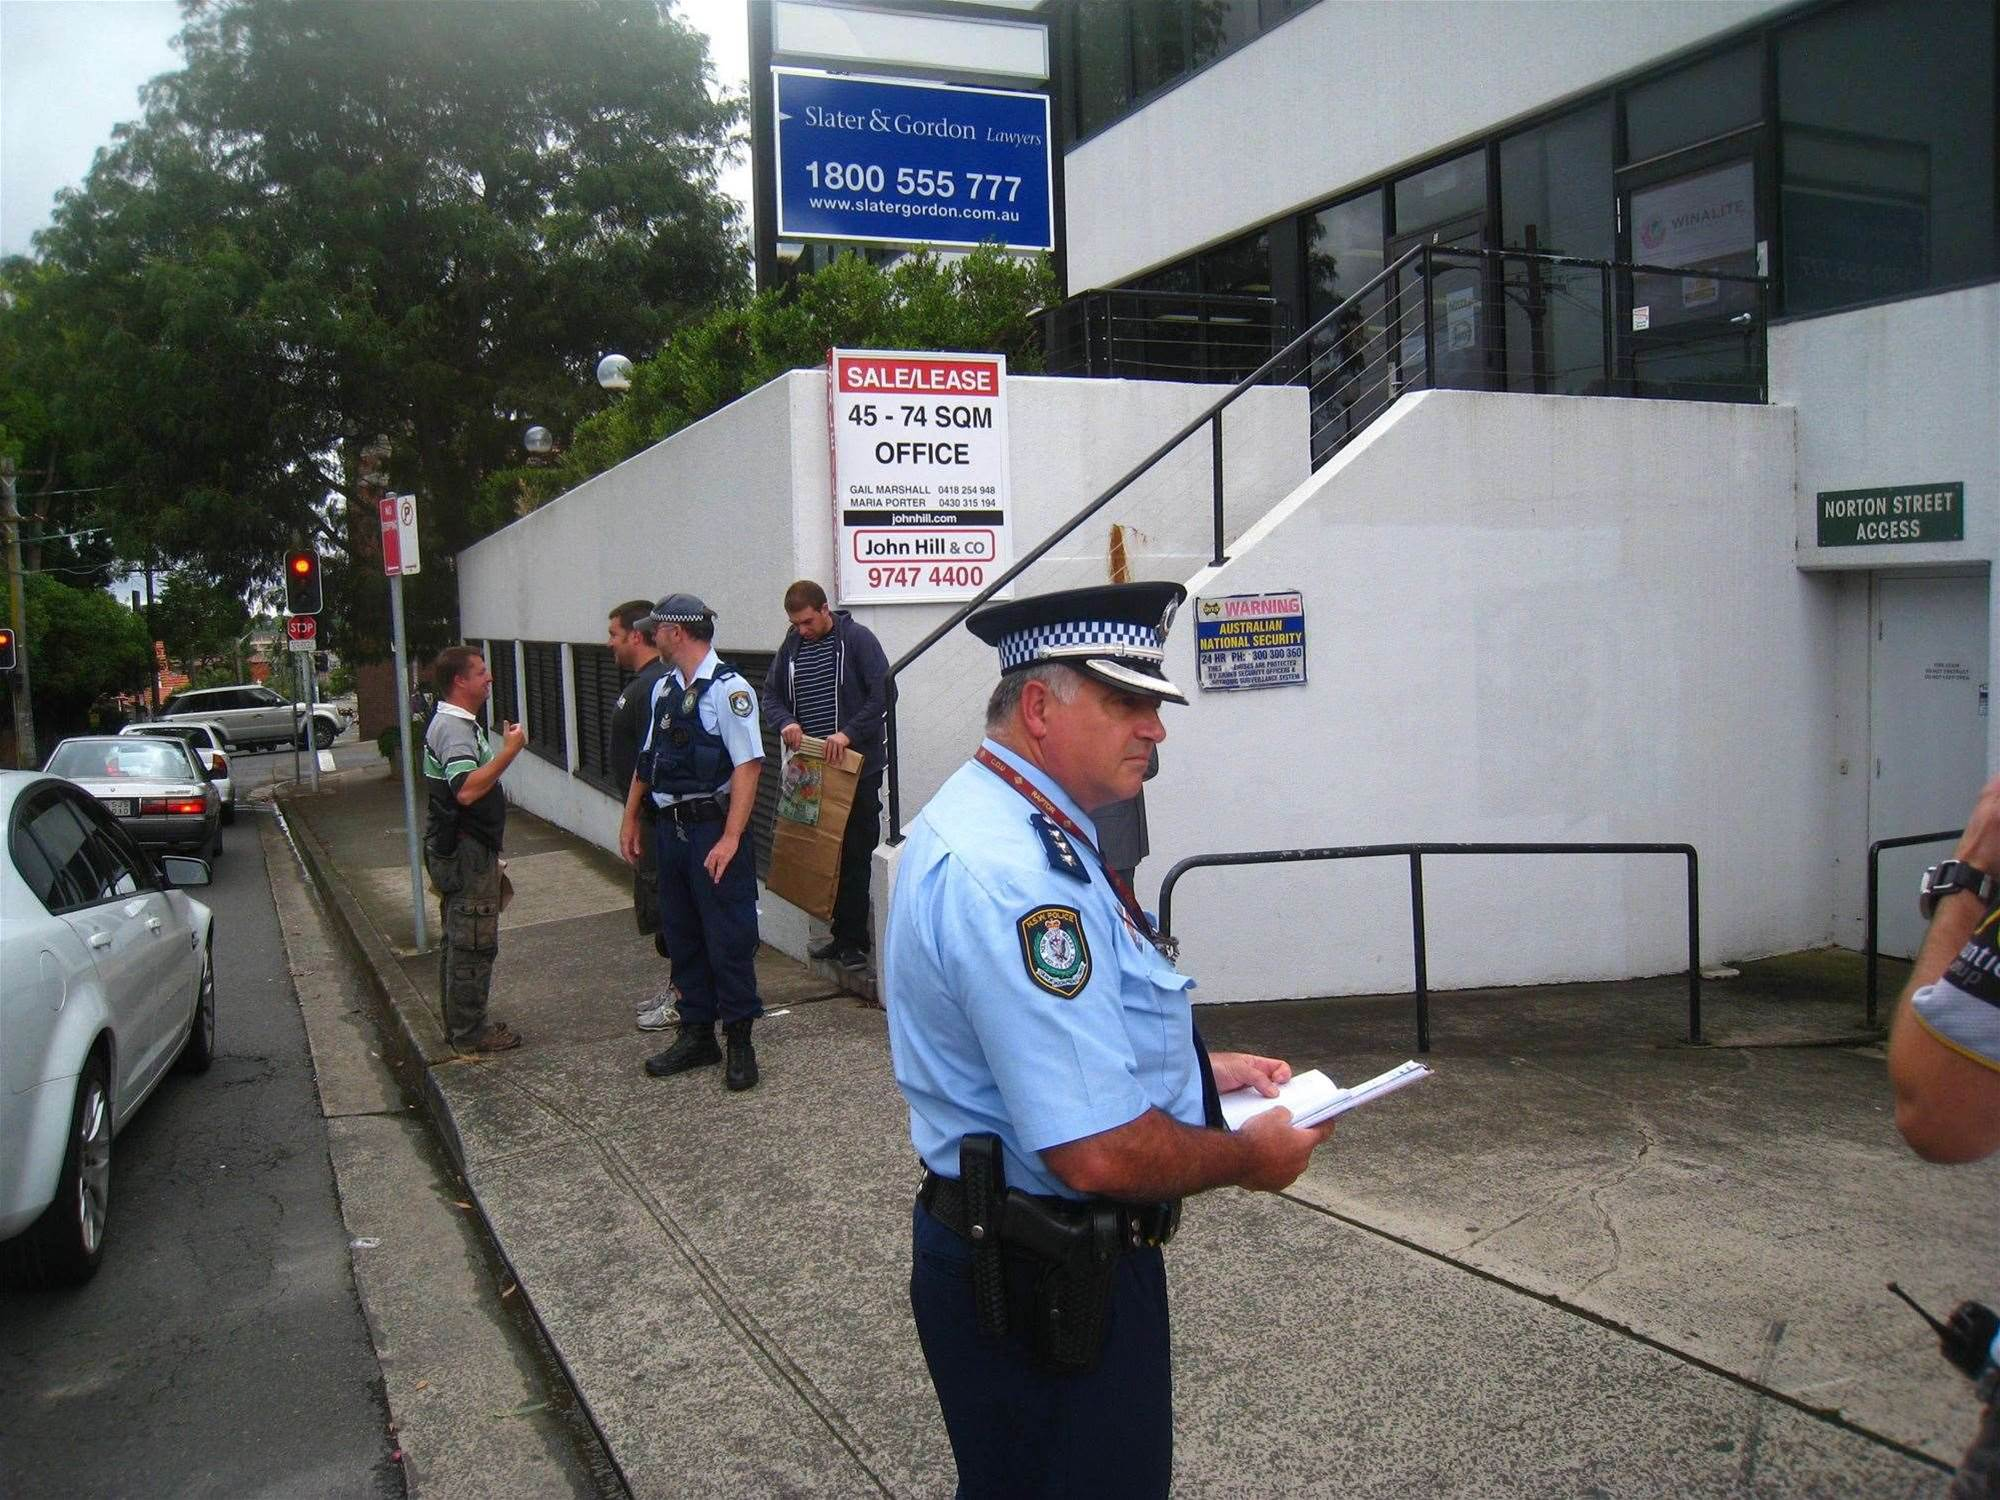 NSW Police in front of the premises.